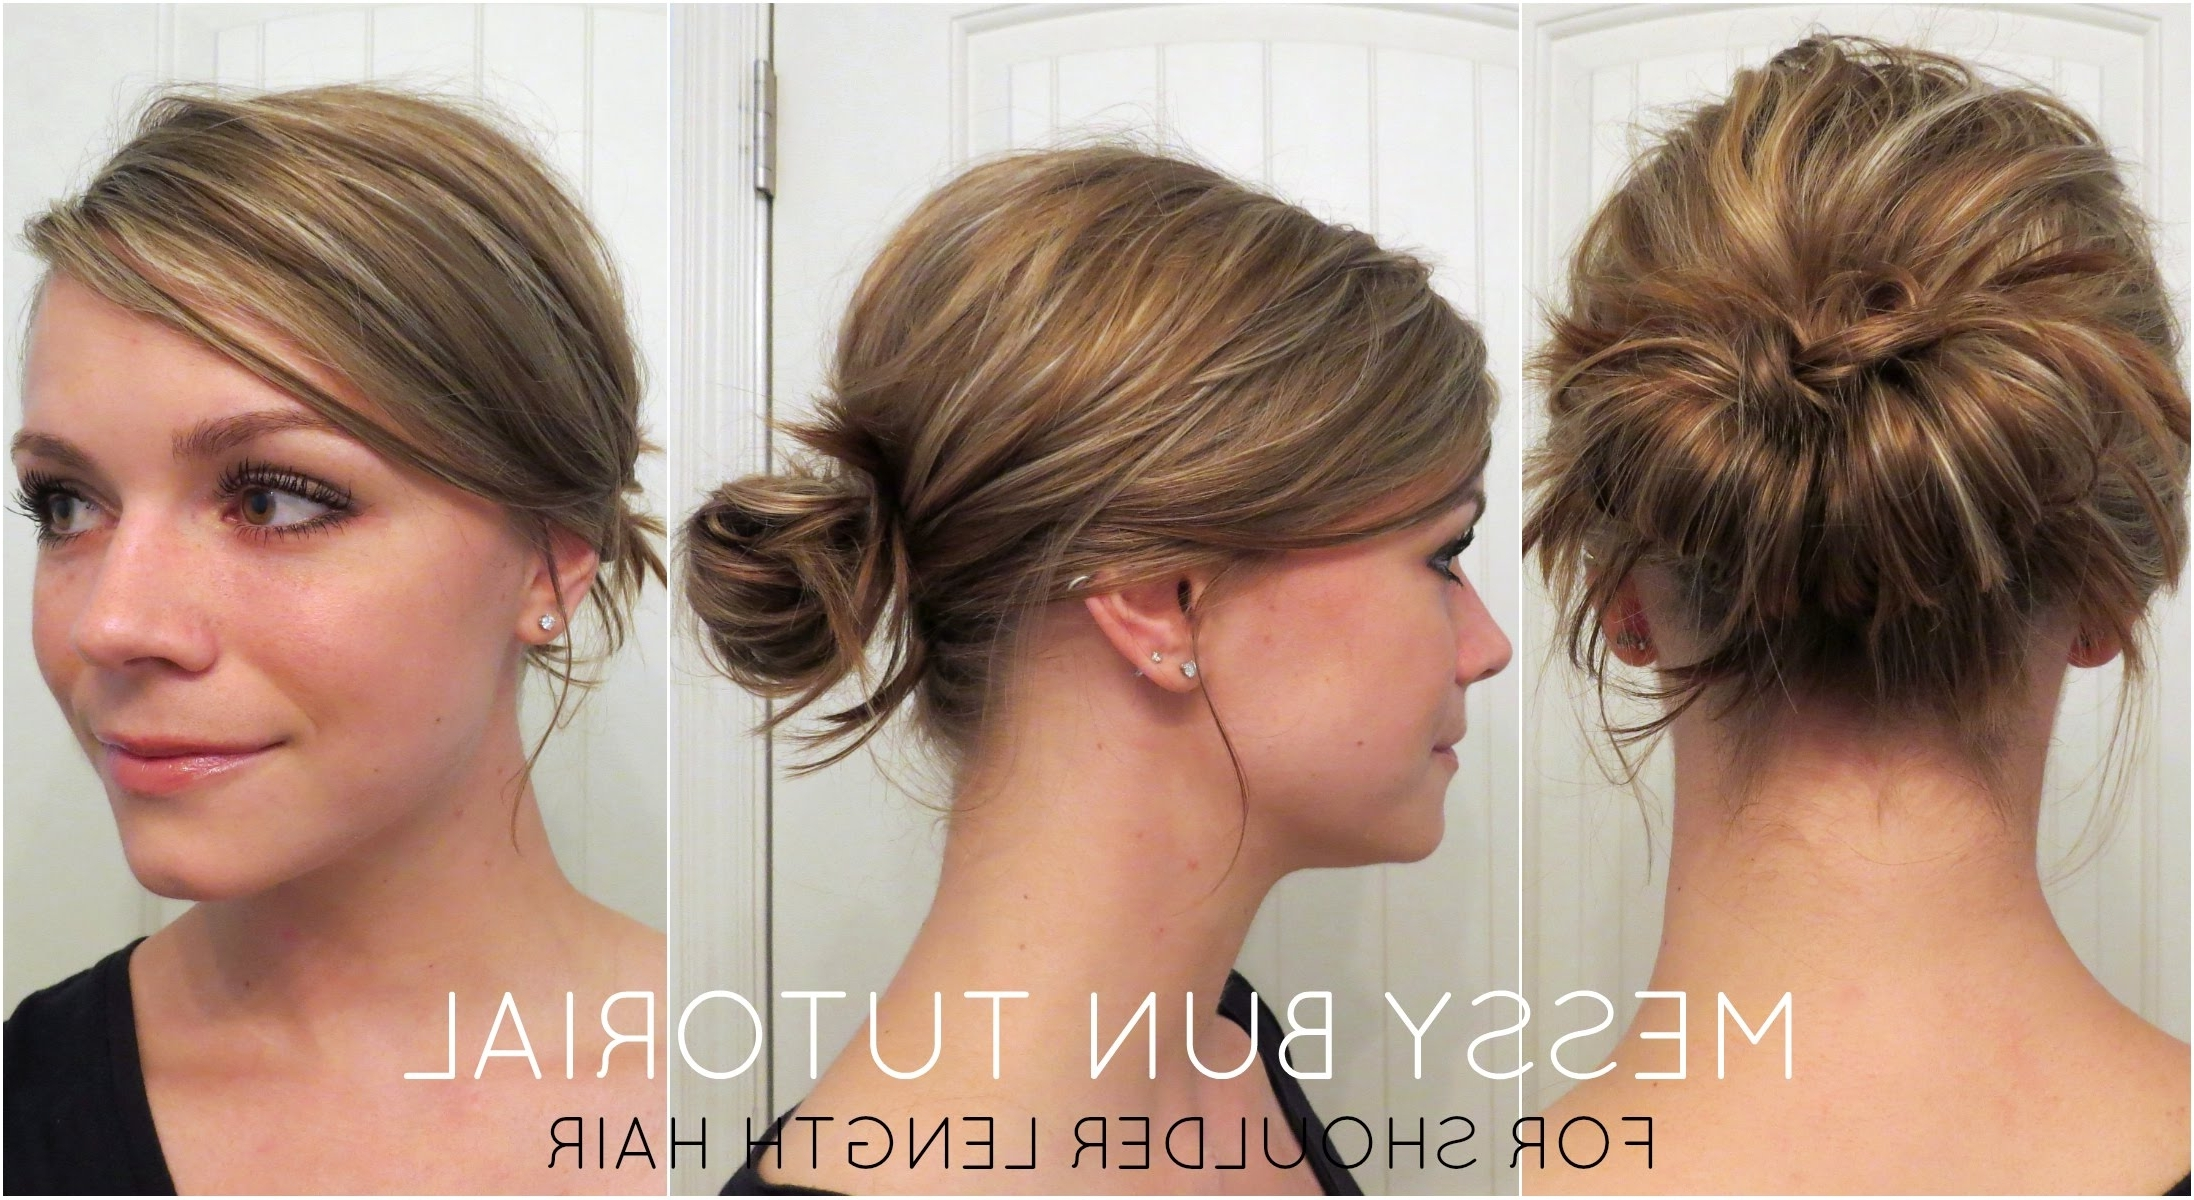 Messy Bun For Shoulder Length Hair – Youtube Pertaining To Shoulder Length Updo Hairstyles (View 10 of 15)